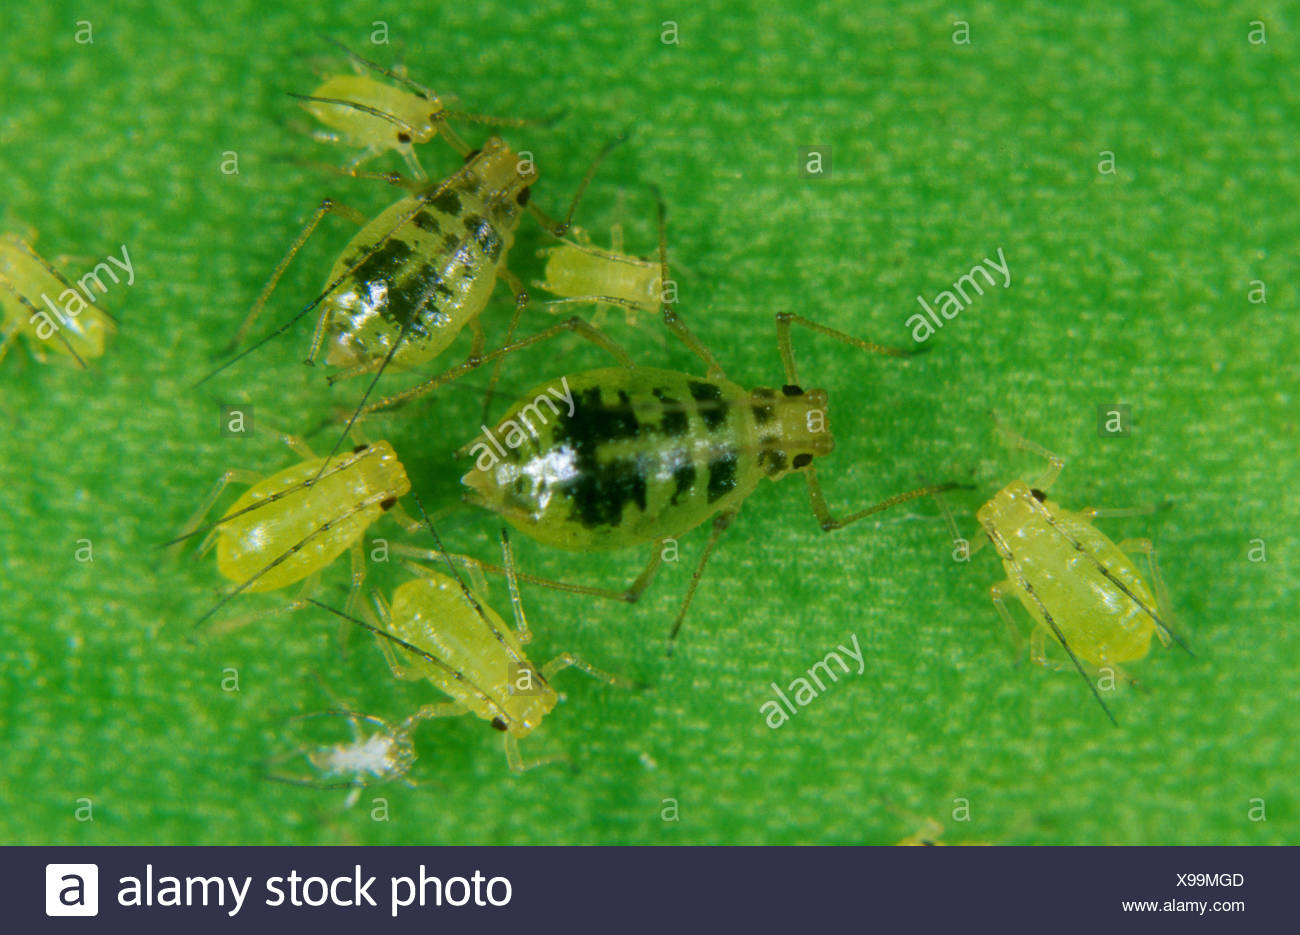 Mottled arum aphid Aulacorthum circumflexum female and juveniles on a leaf - Stock Image